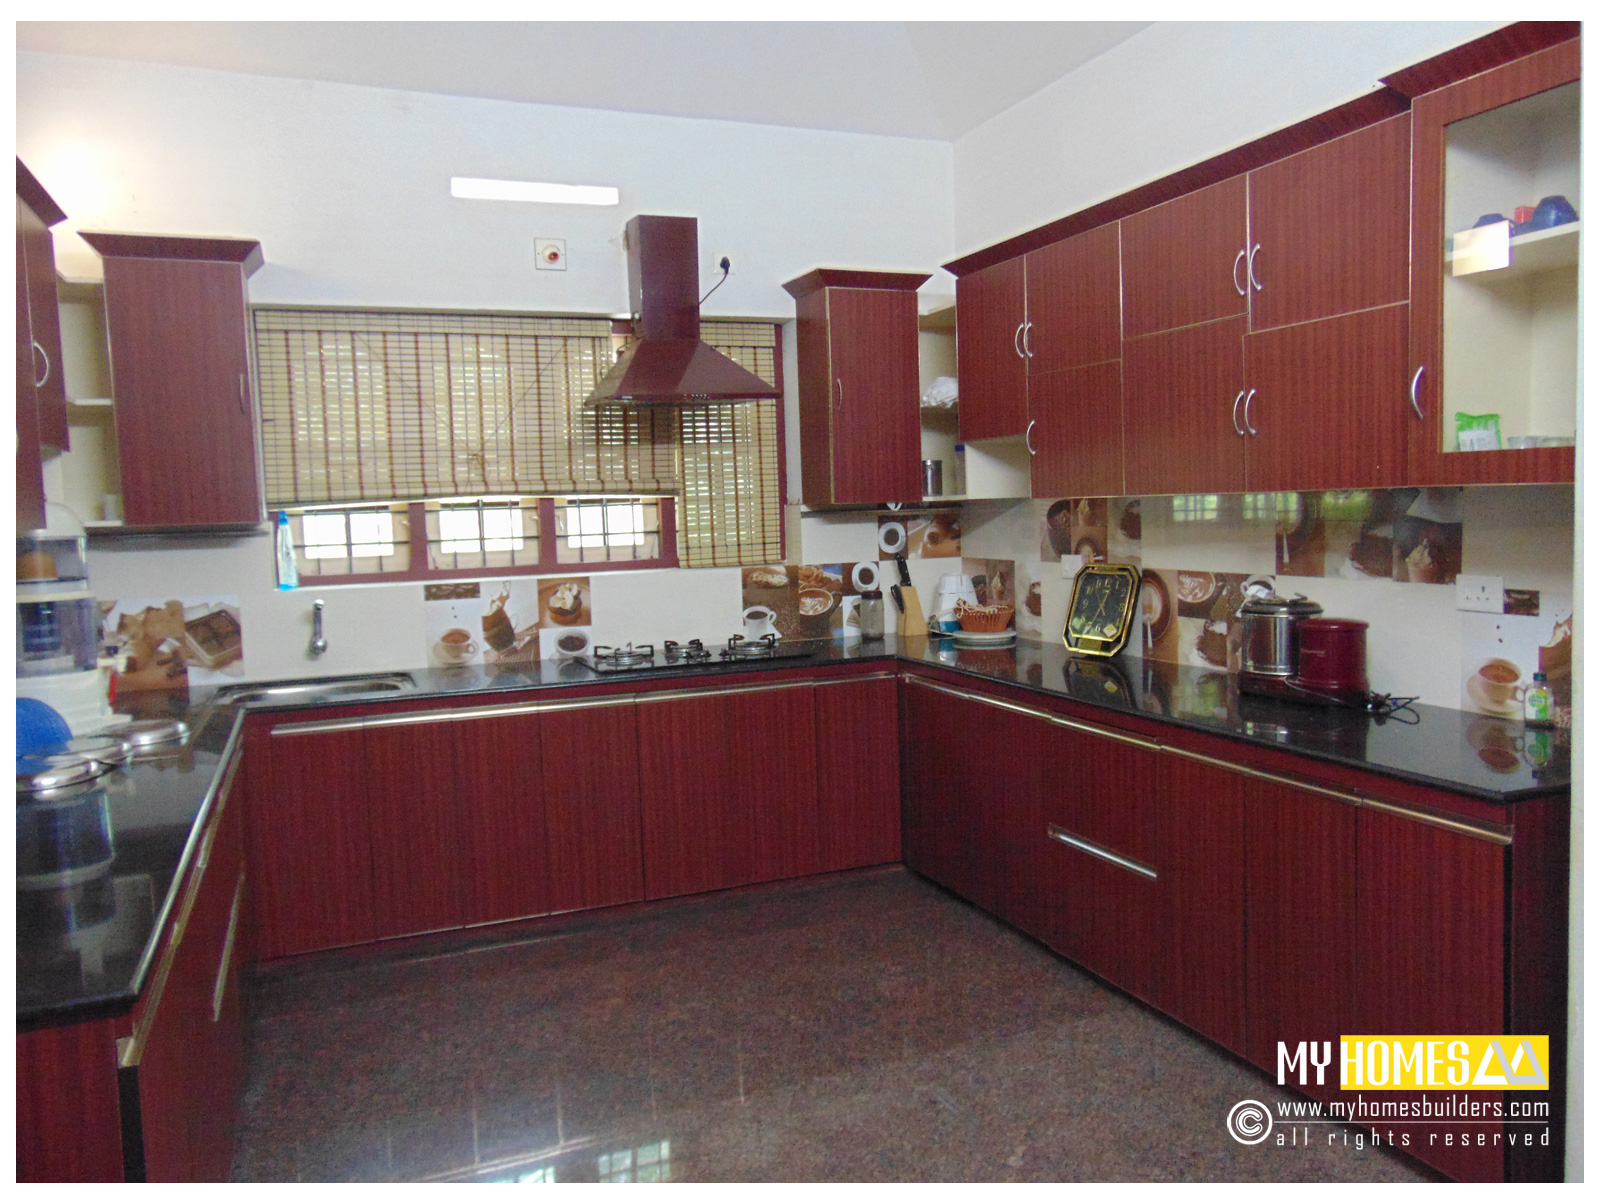 Budget house kerala home designers builder in thrissur india for Home kitchen design